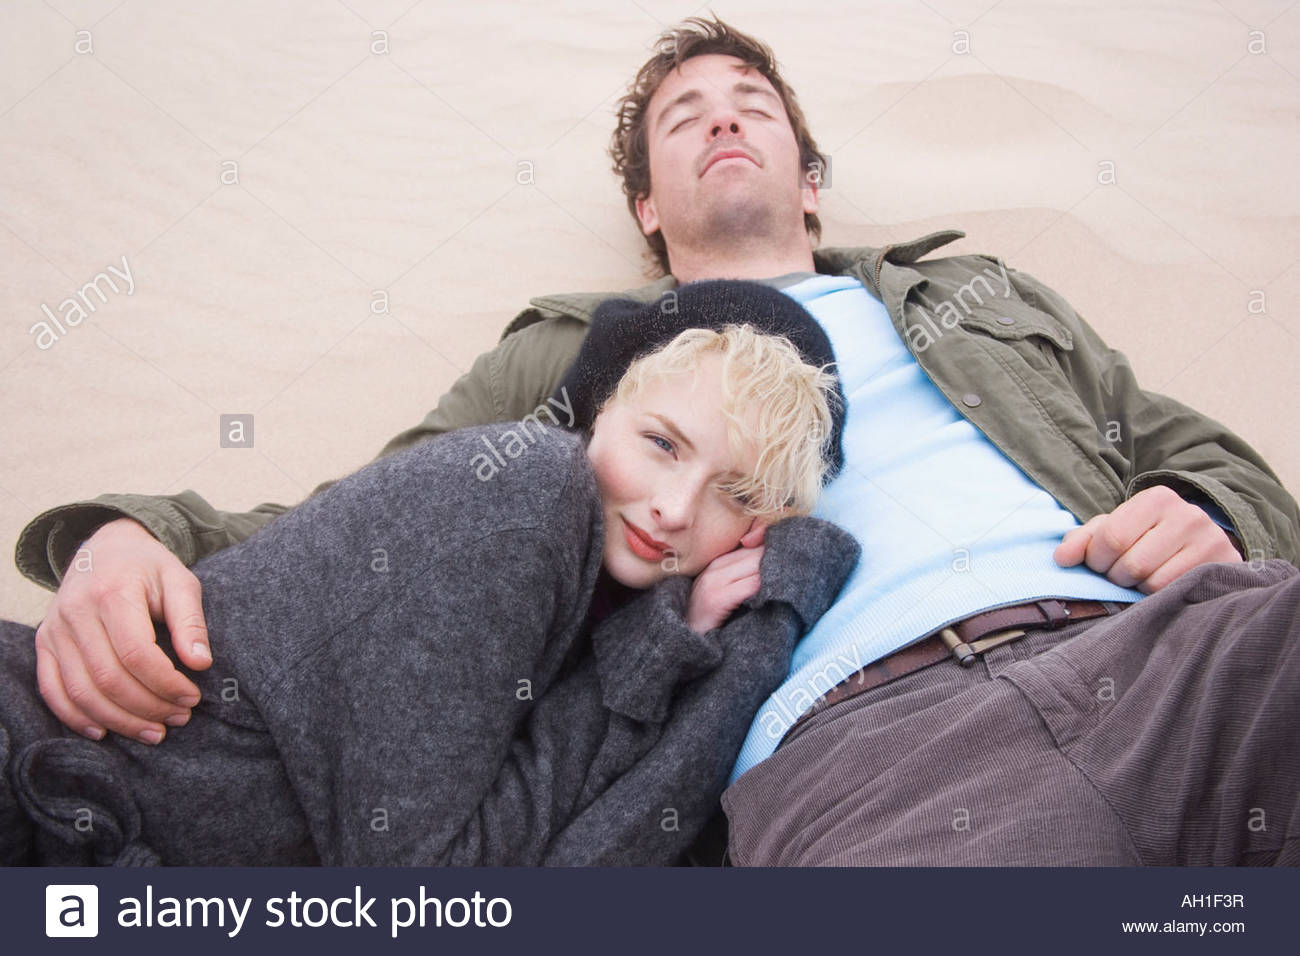 A couple at the beach - Stock Image